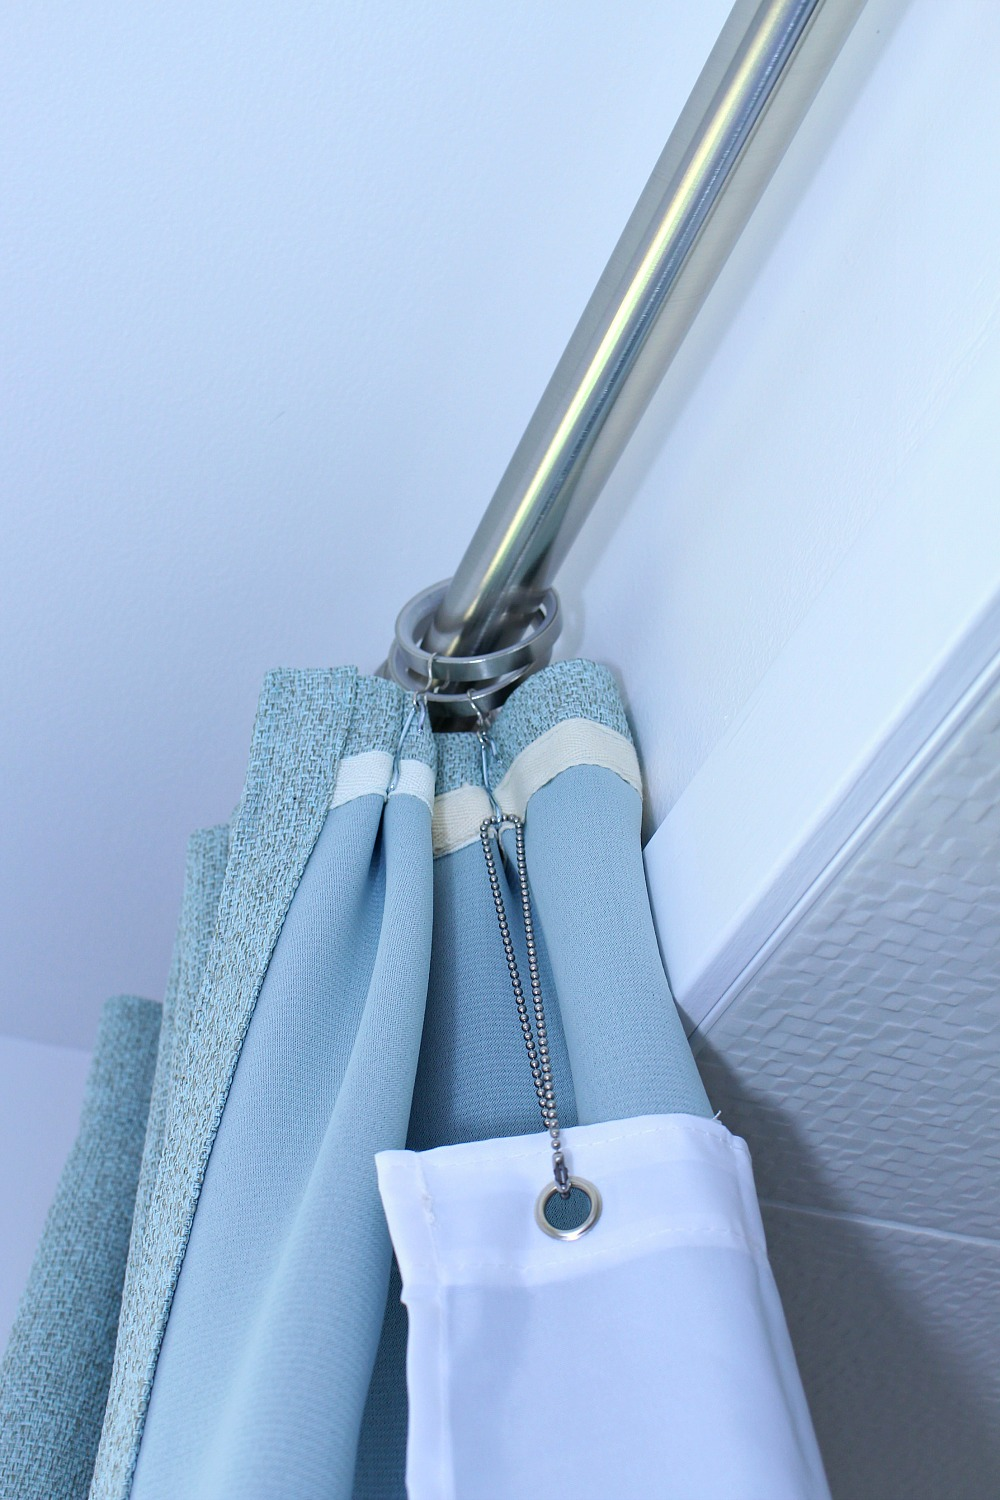 Ceiling Mounted Shower Curtain Rod + Turquoise Tweed Pleated Shower Curtain  In Modern Bathroom Reno ...